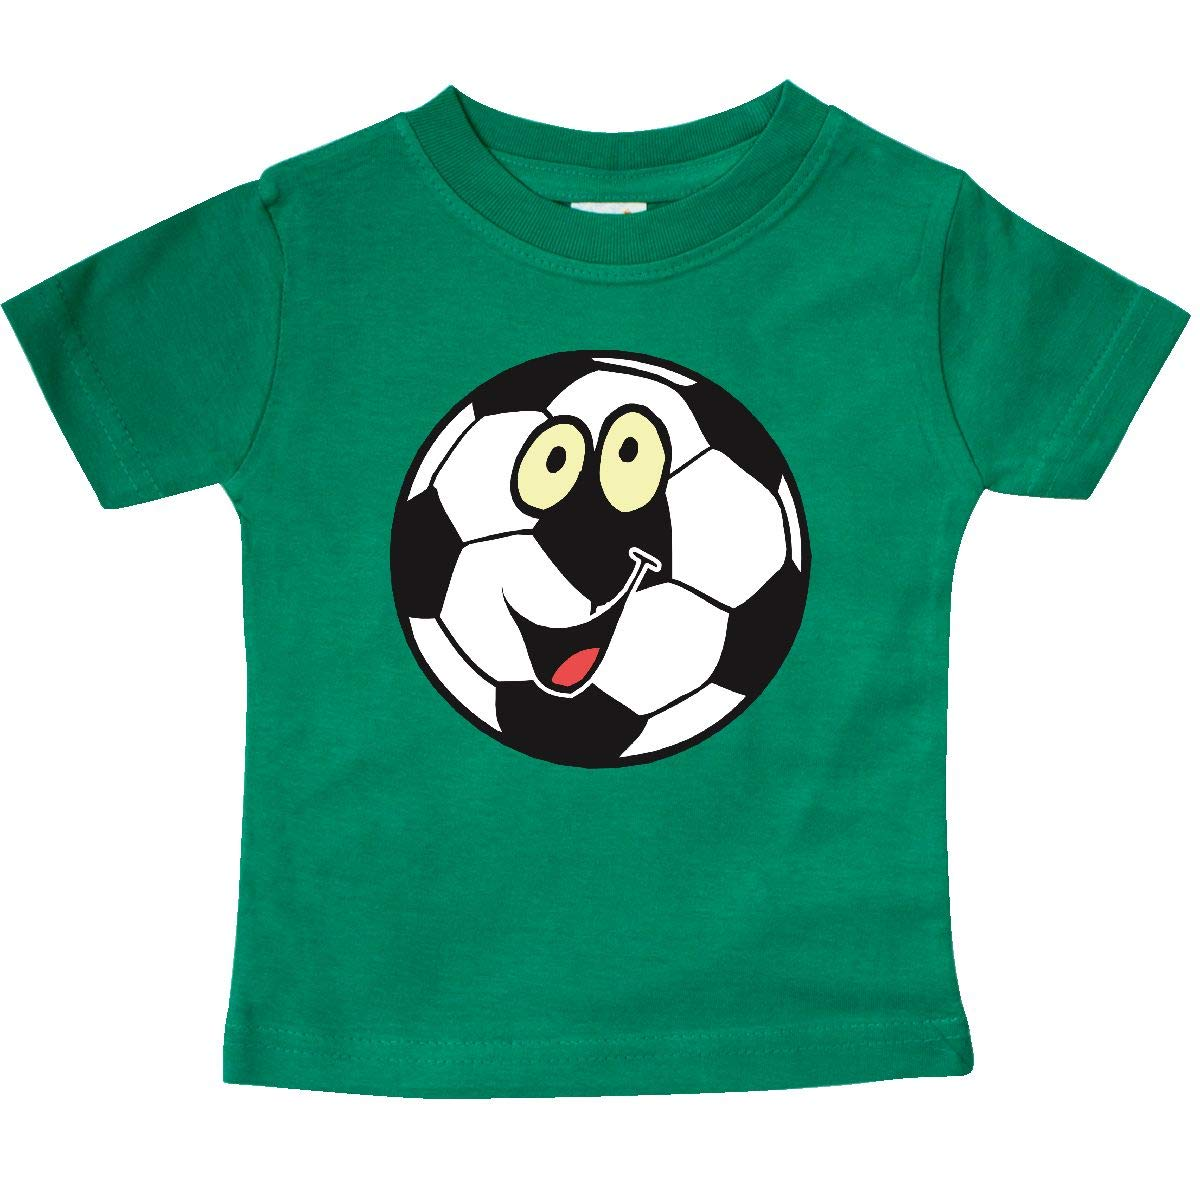 inktastic Smiling Soccer Ball Baby T-Shirt